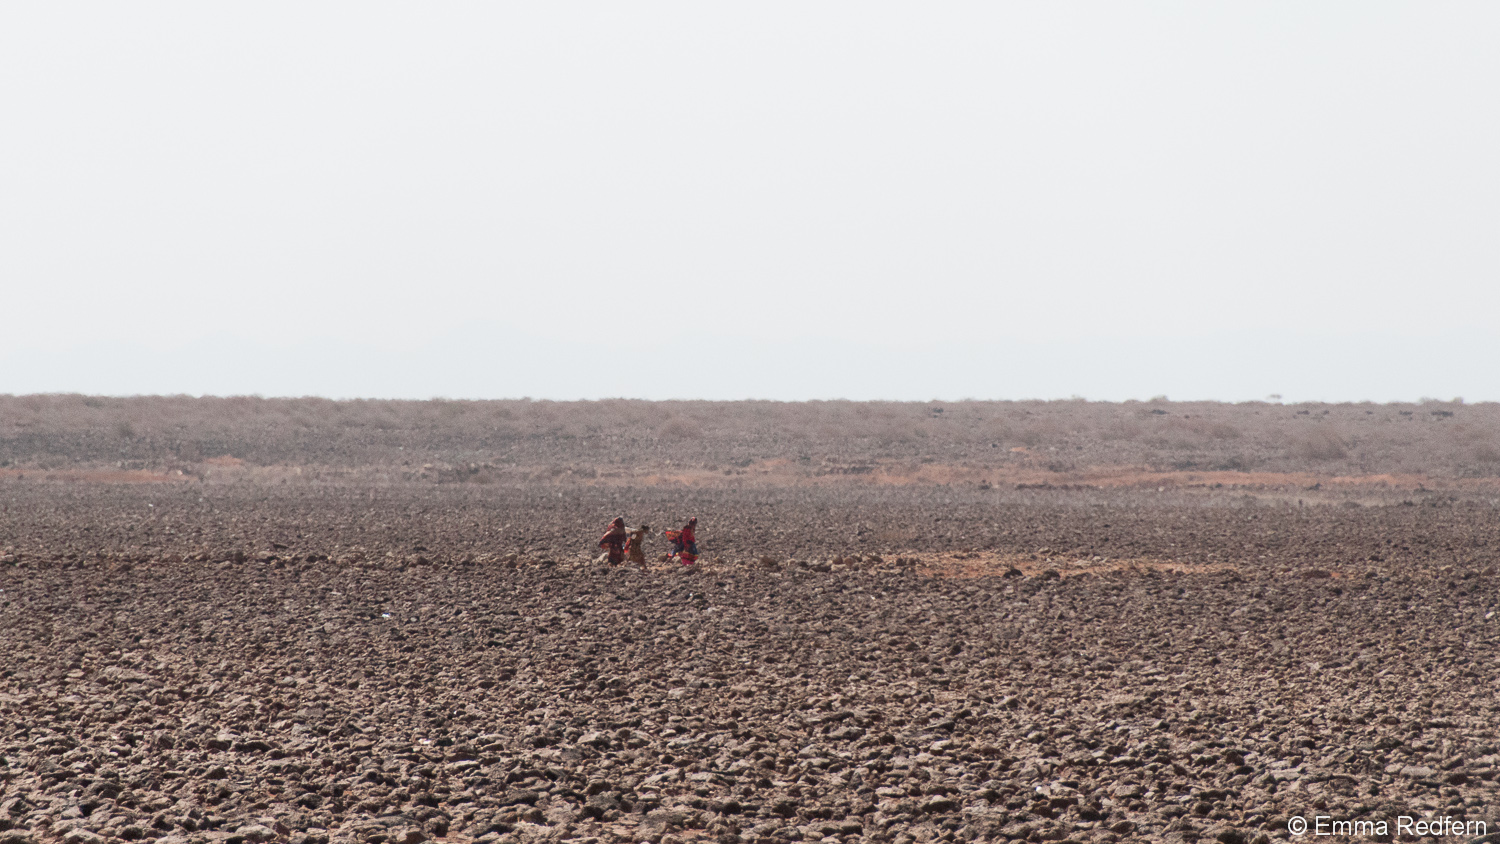 Gabra women walking through a desert of volcanic rock